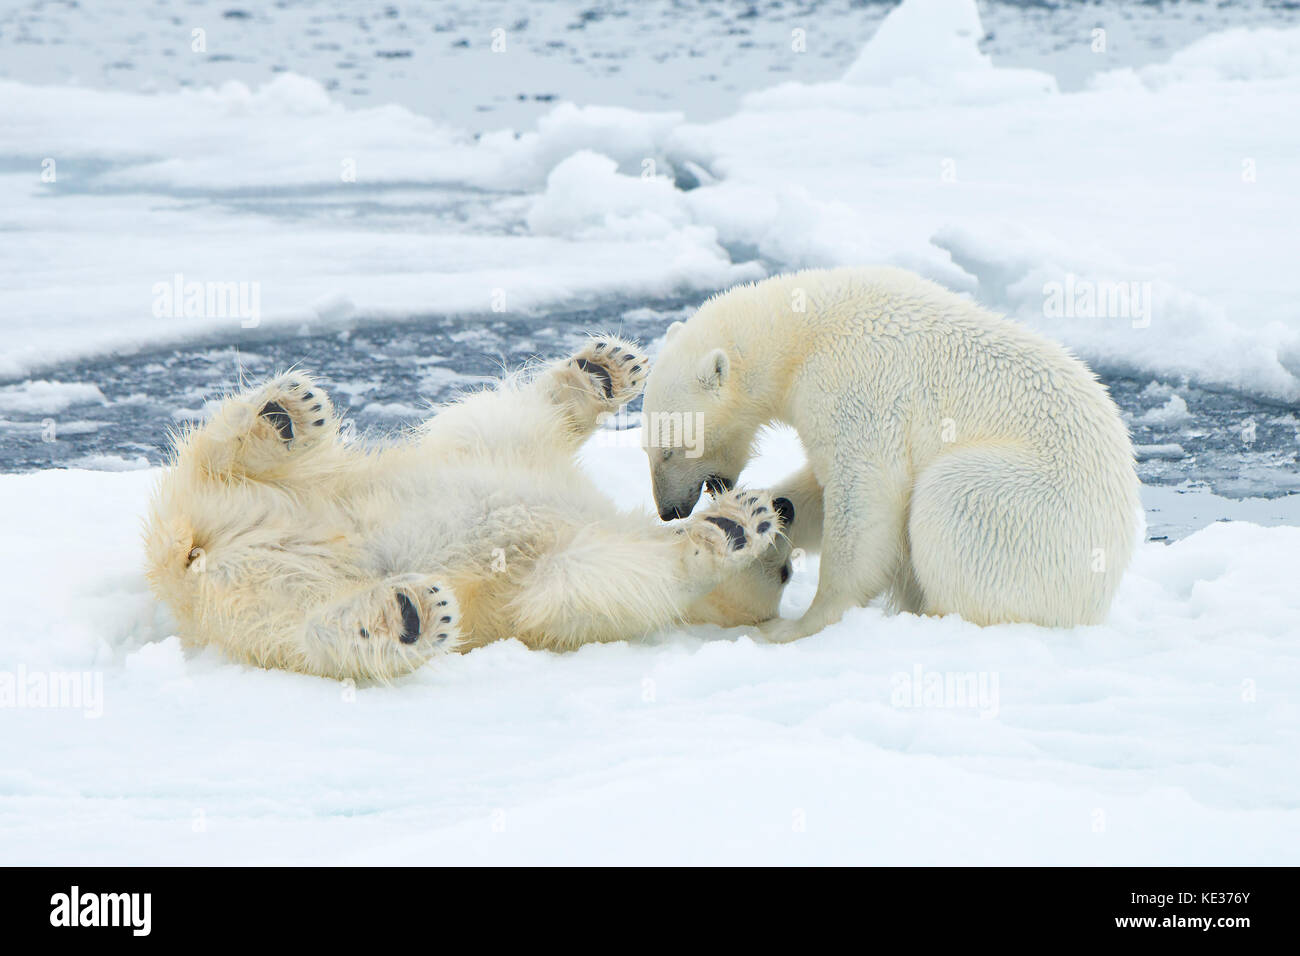 Adult female polar bears (Ursus maritimus) interacting on the sea ice, Svalbard Archipelago, Arctic Norway - Stock Image